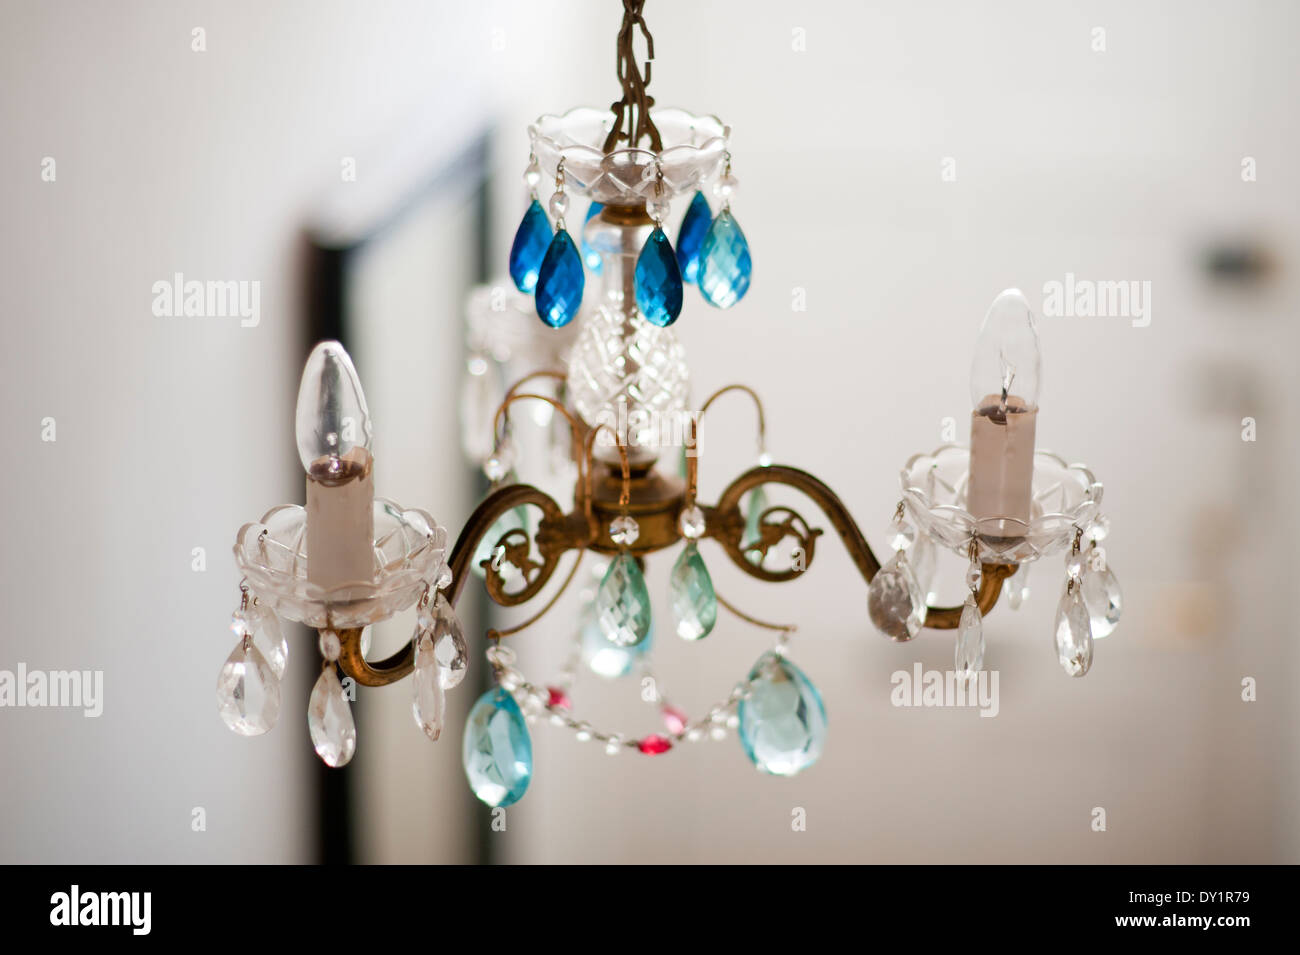 Detail of chandelier with assorted blue glass drops - Stock Image